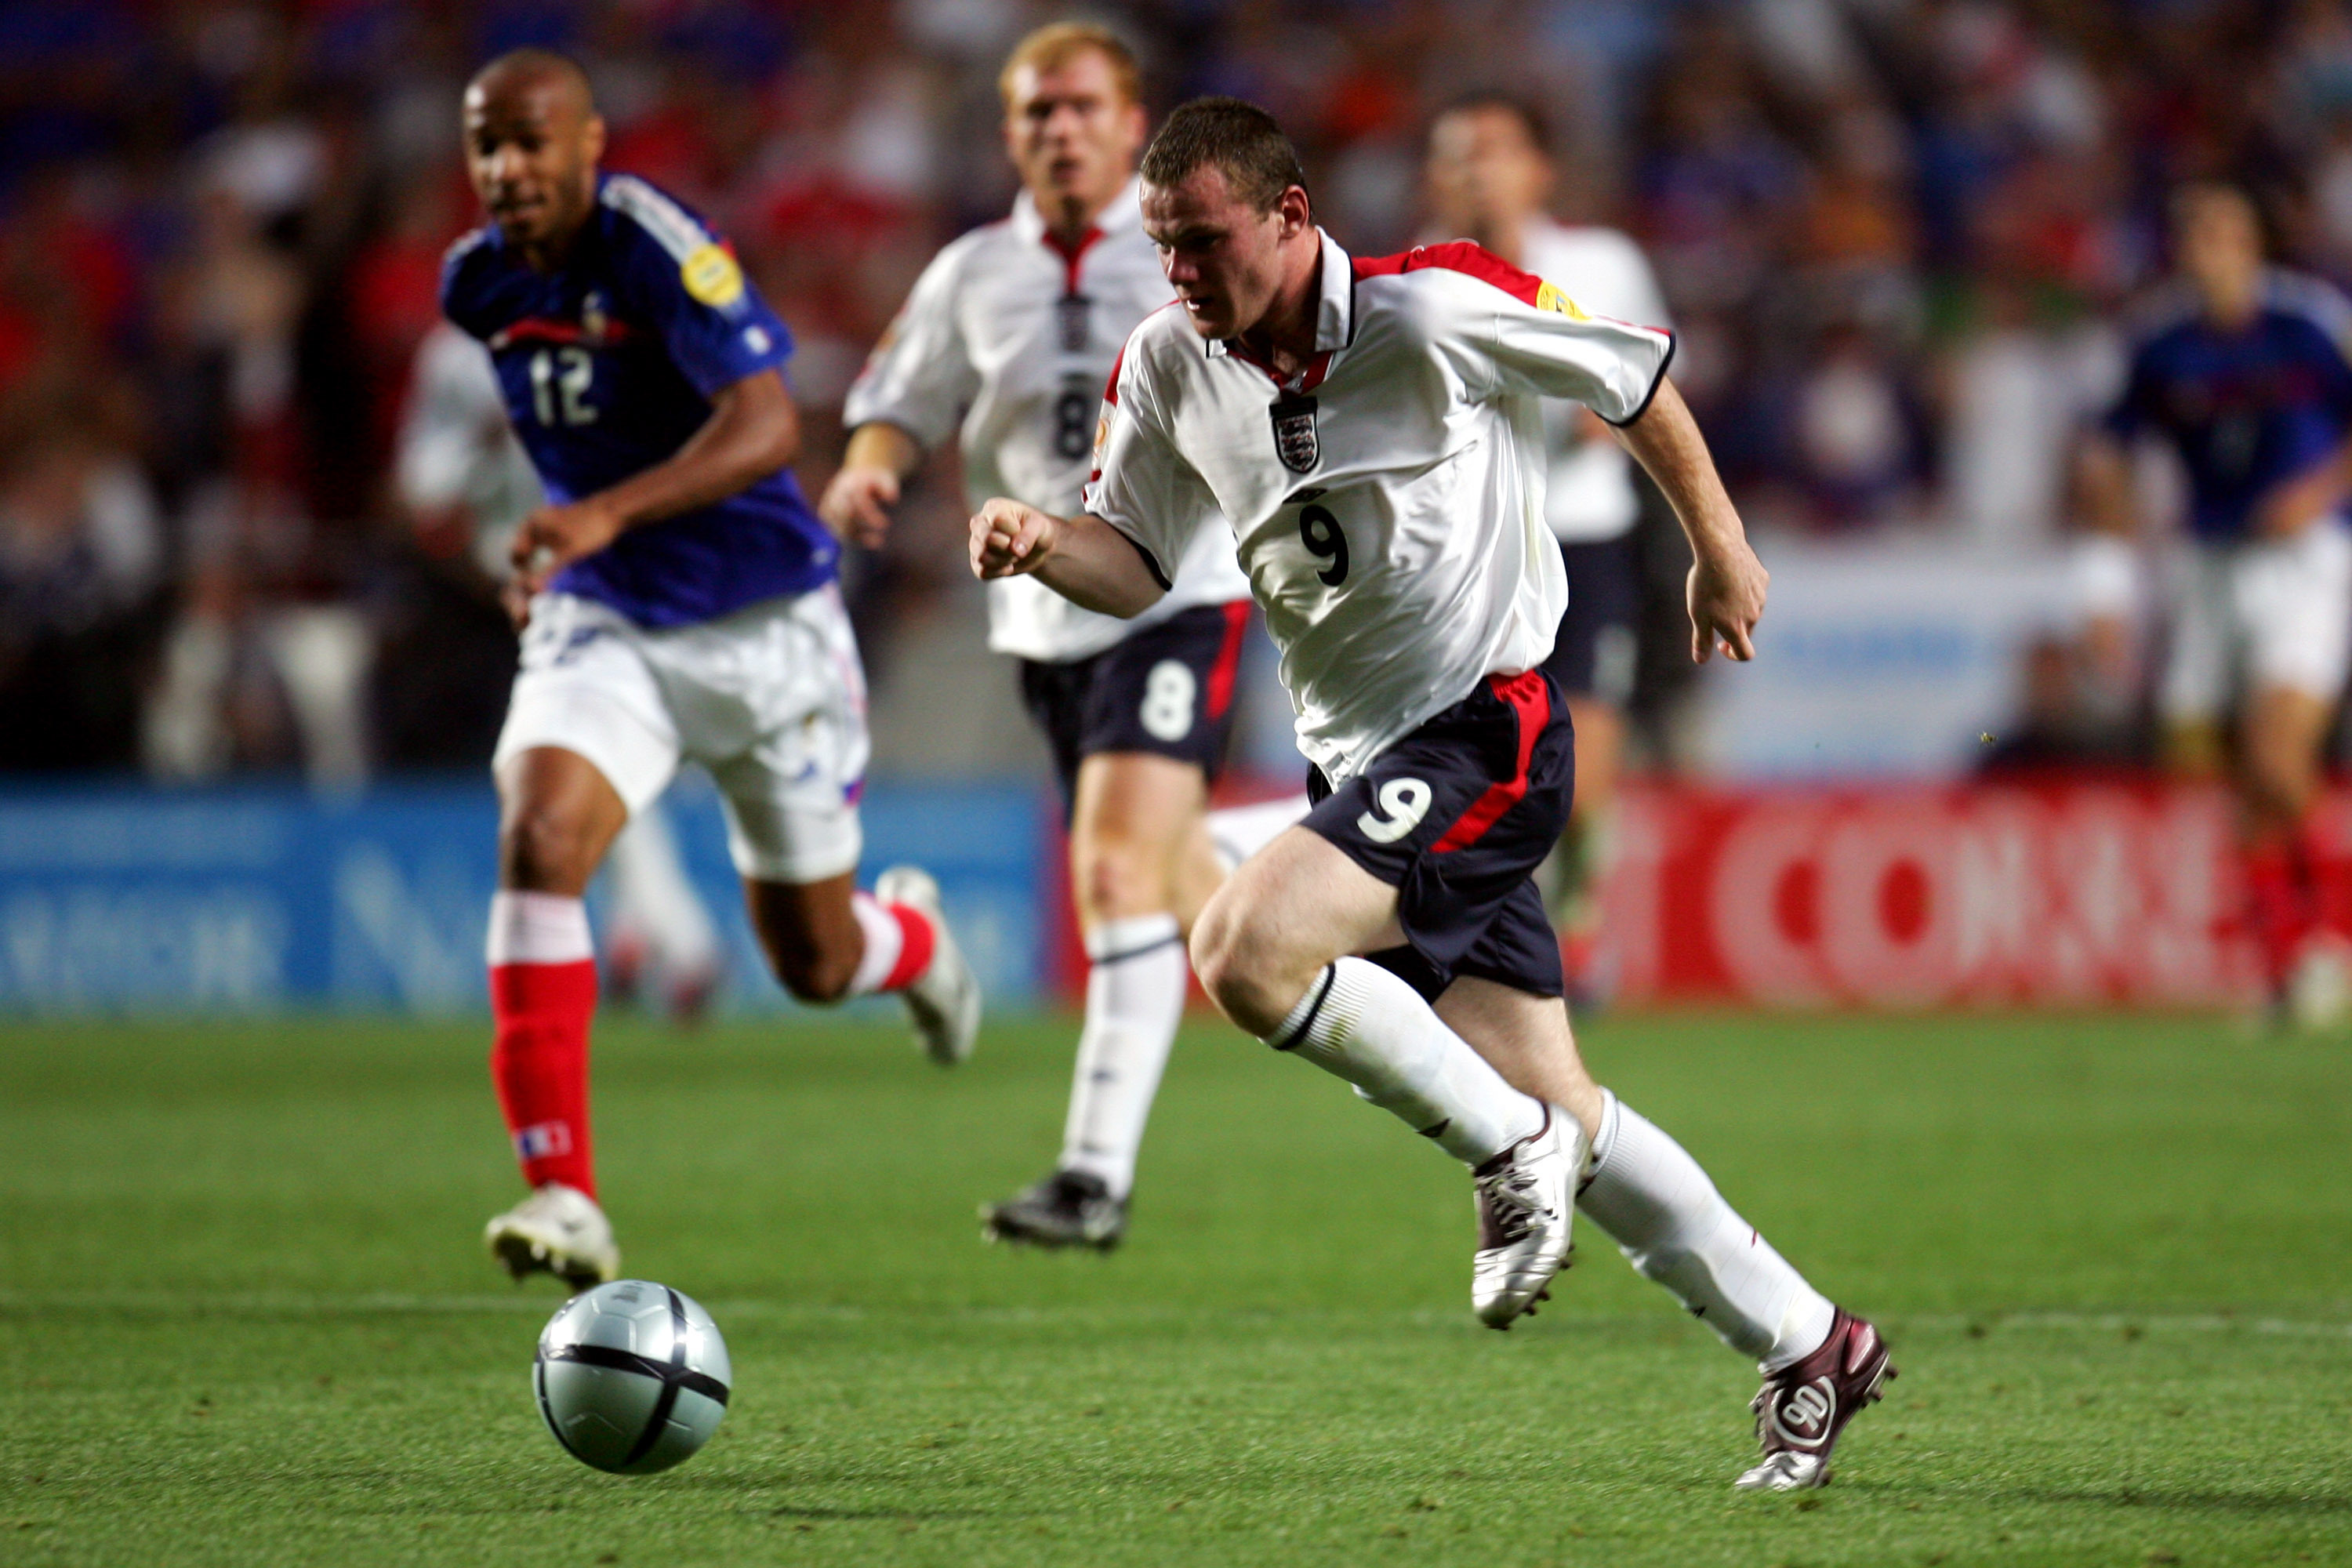 Wayne Rooney plays against France at Euro 2004